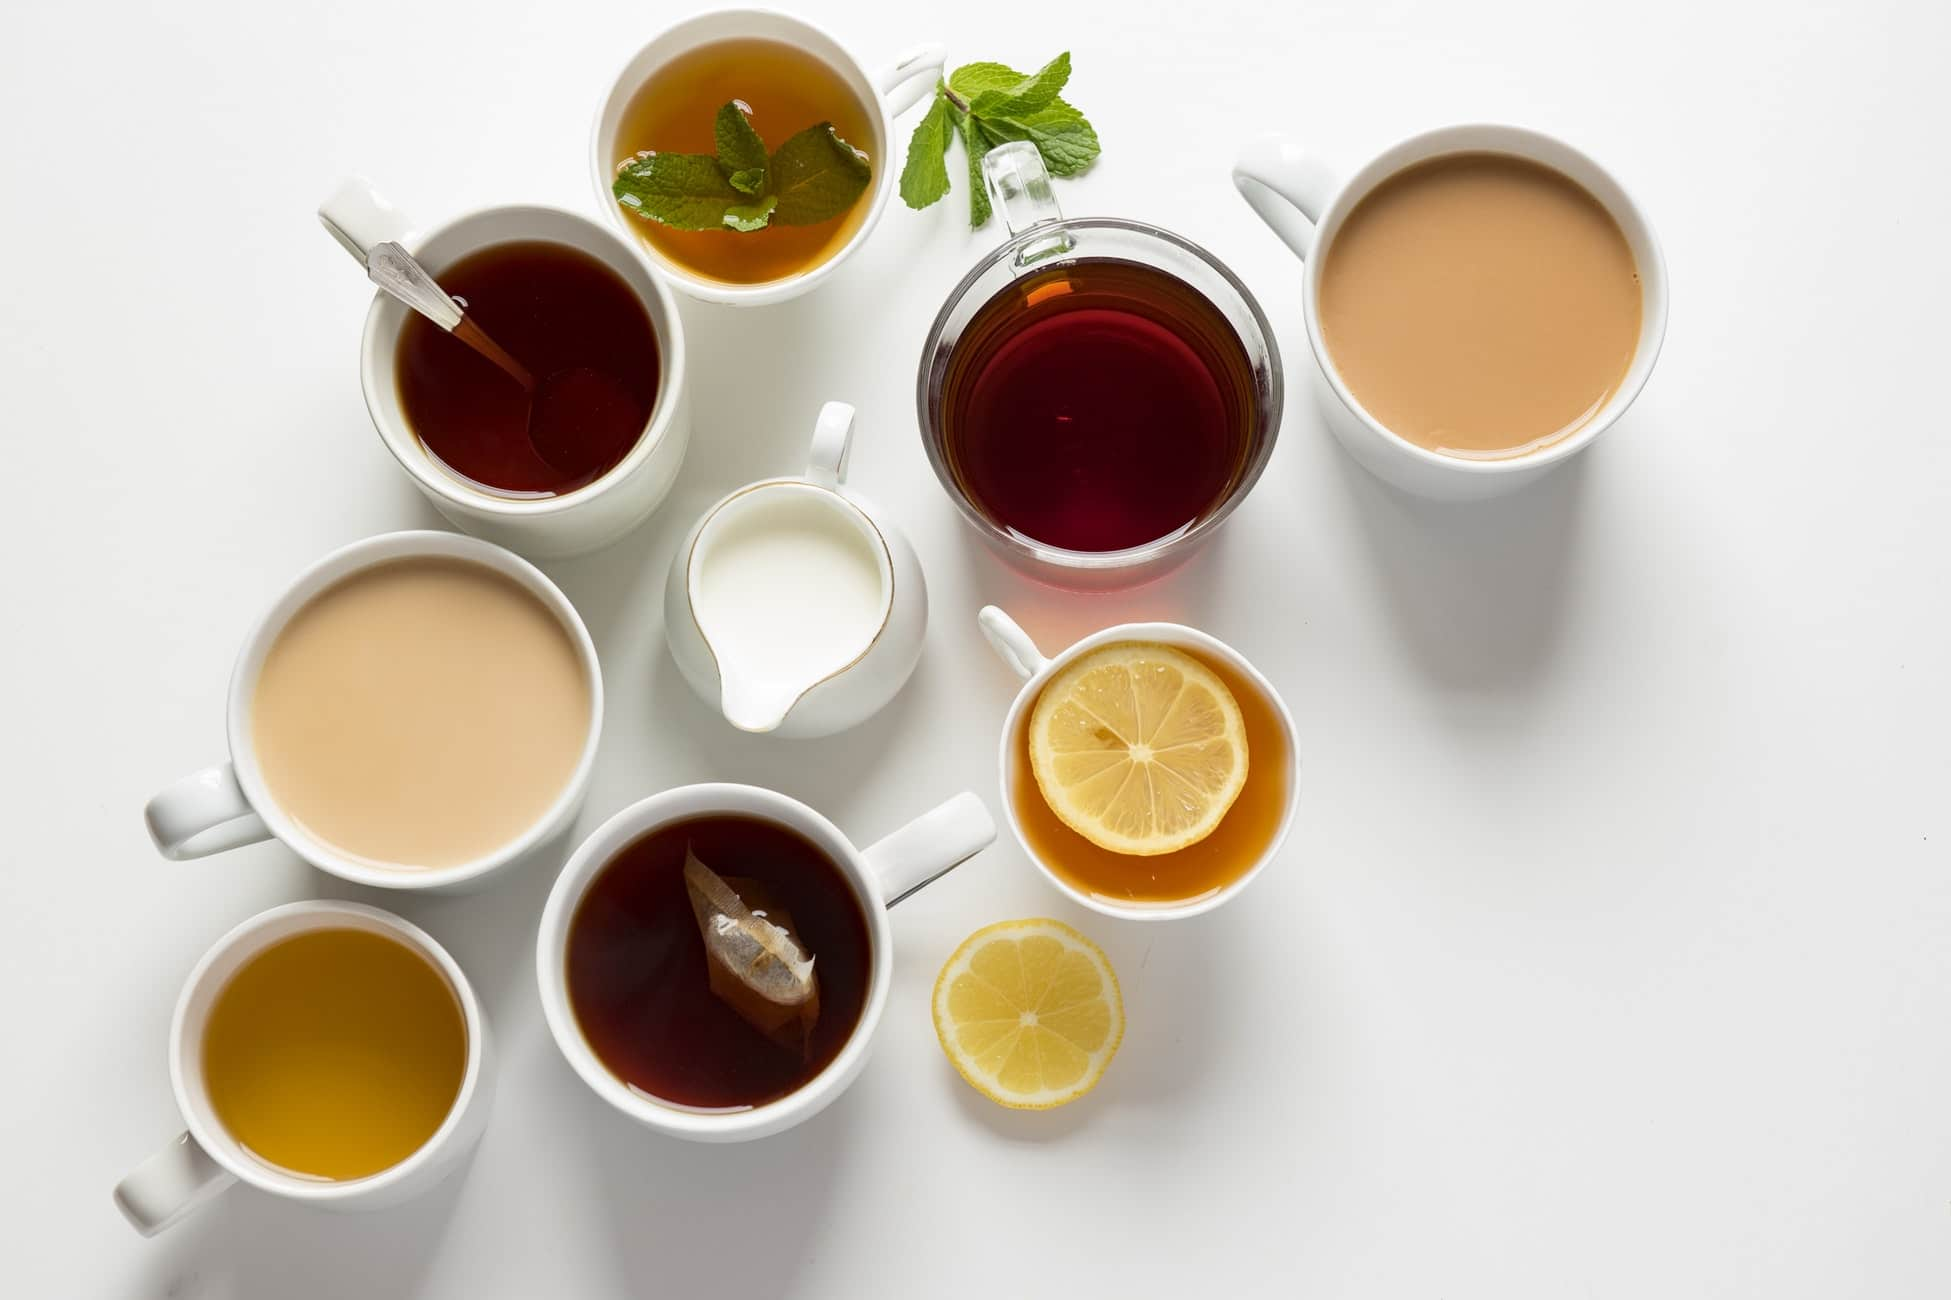 assortment of tea and coffee on a table